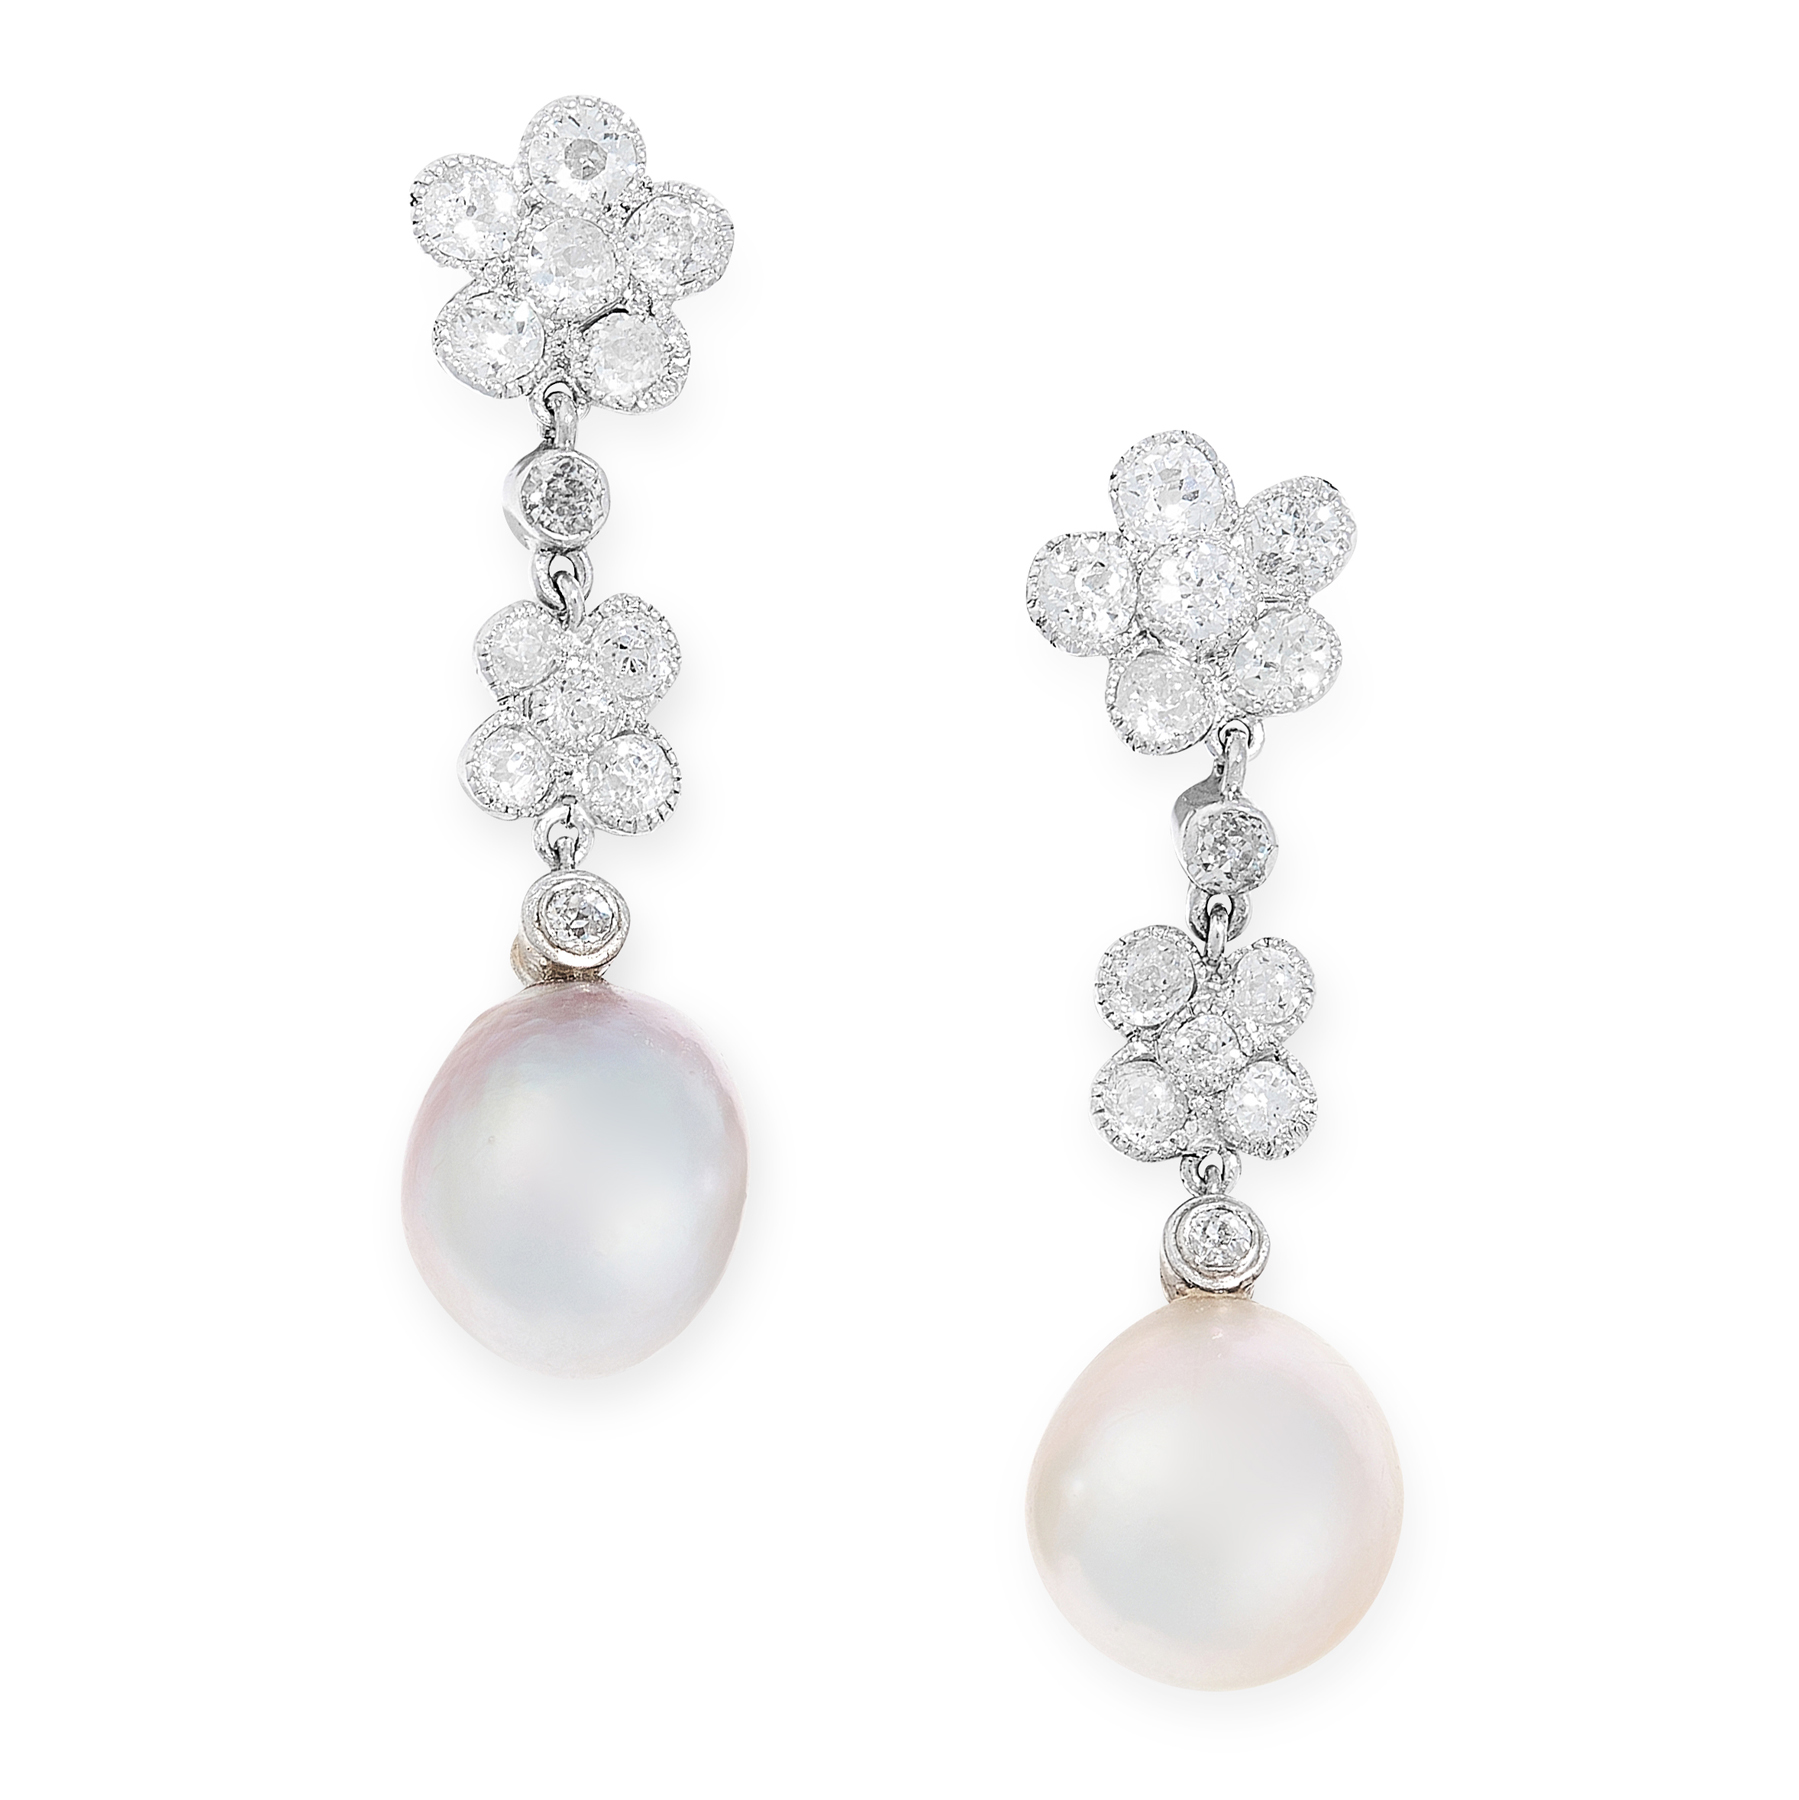 A PAIR OF NATURAL PEARL AND DIAMOND EARRINGS each set with a natural pearl of 9.71 and 9.04mm,